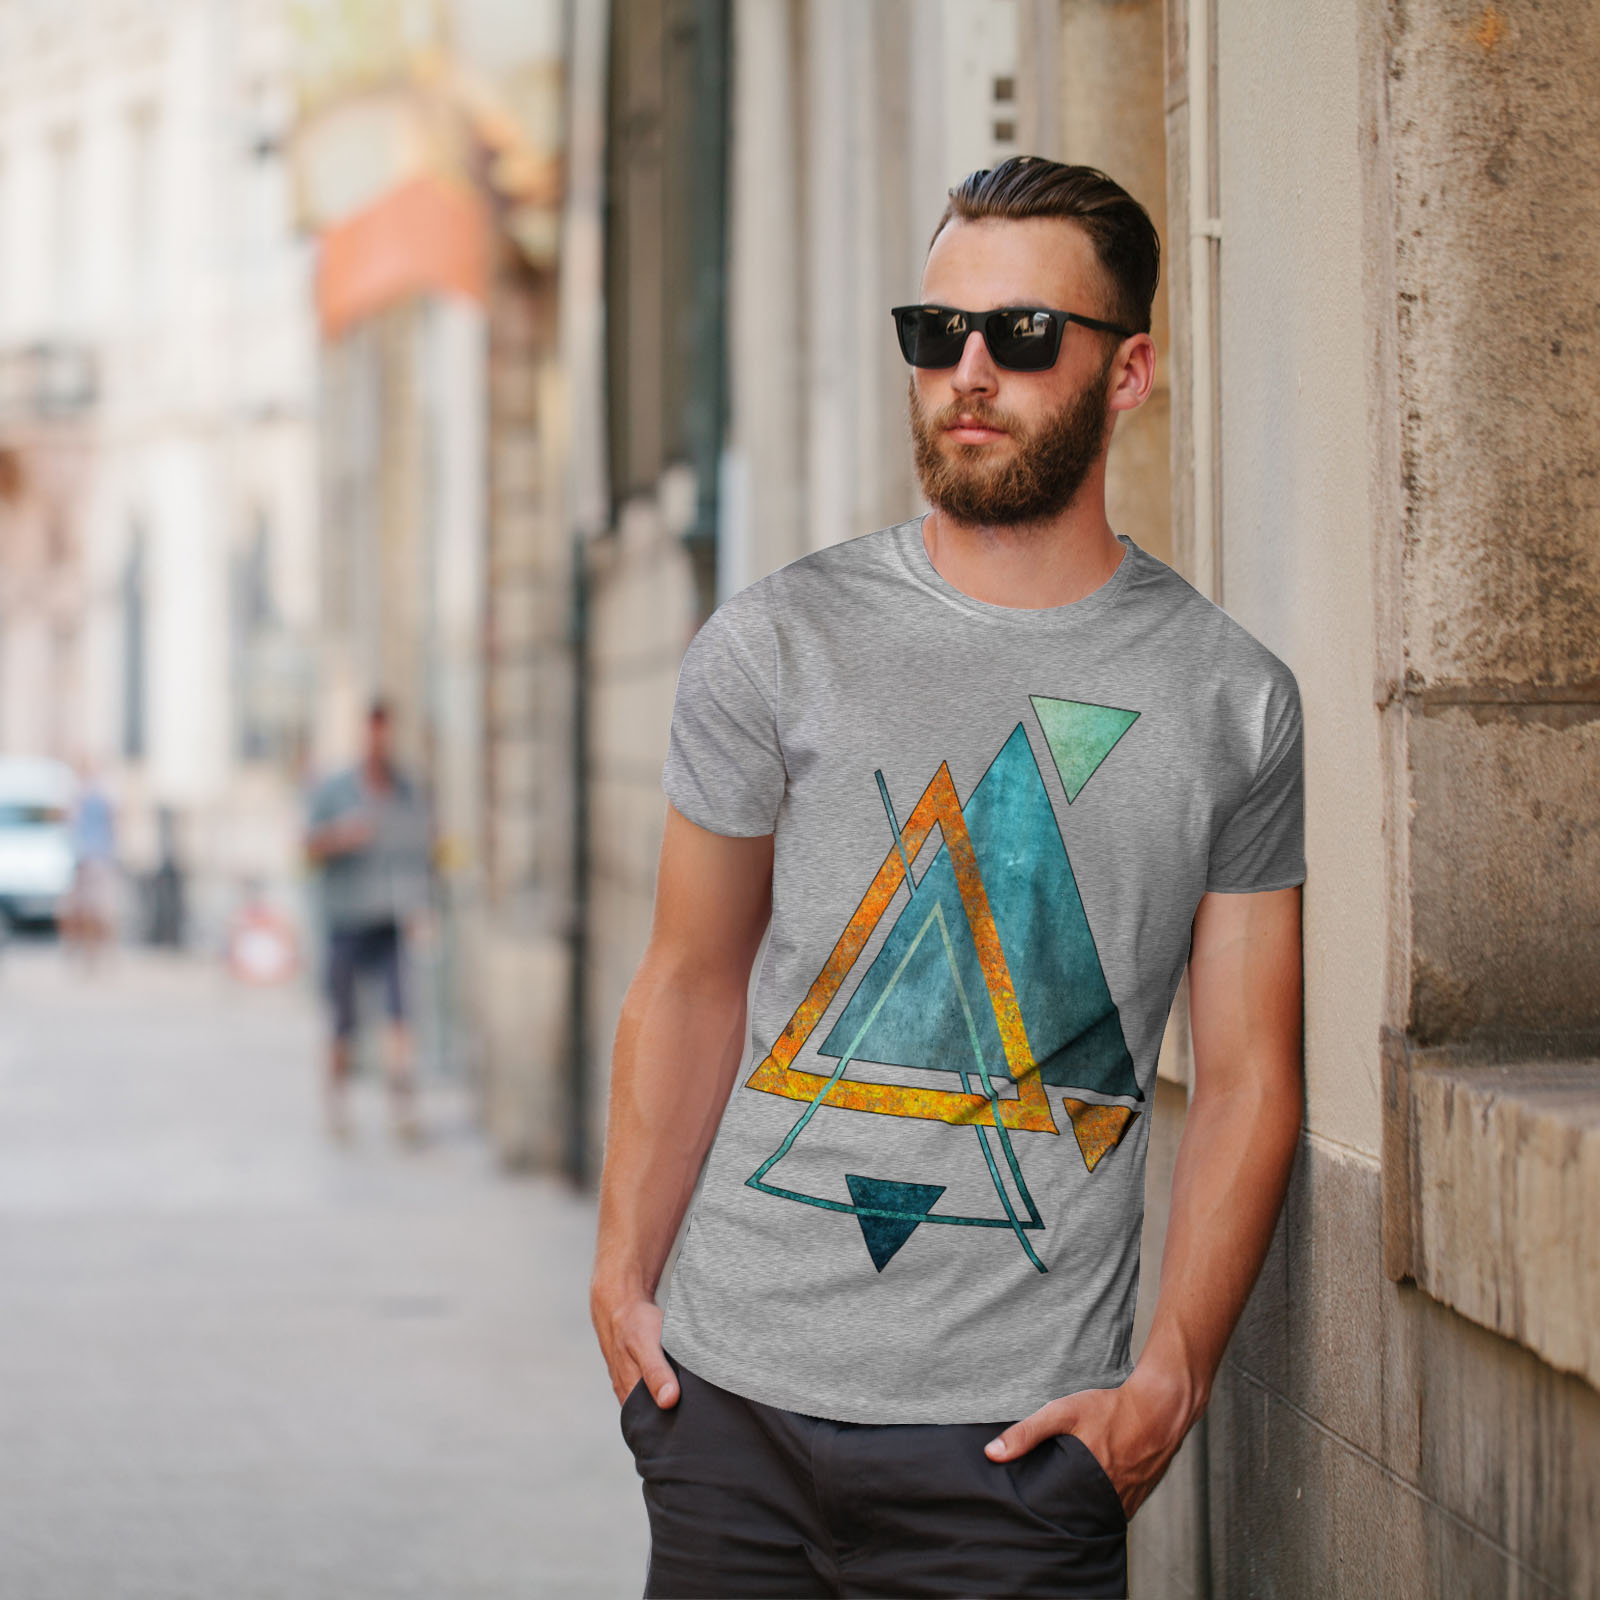 Wellcoda-Abstract-Triangle-T-shirt-homme-forme-design-graphique-imprime-Tee miniature 17